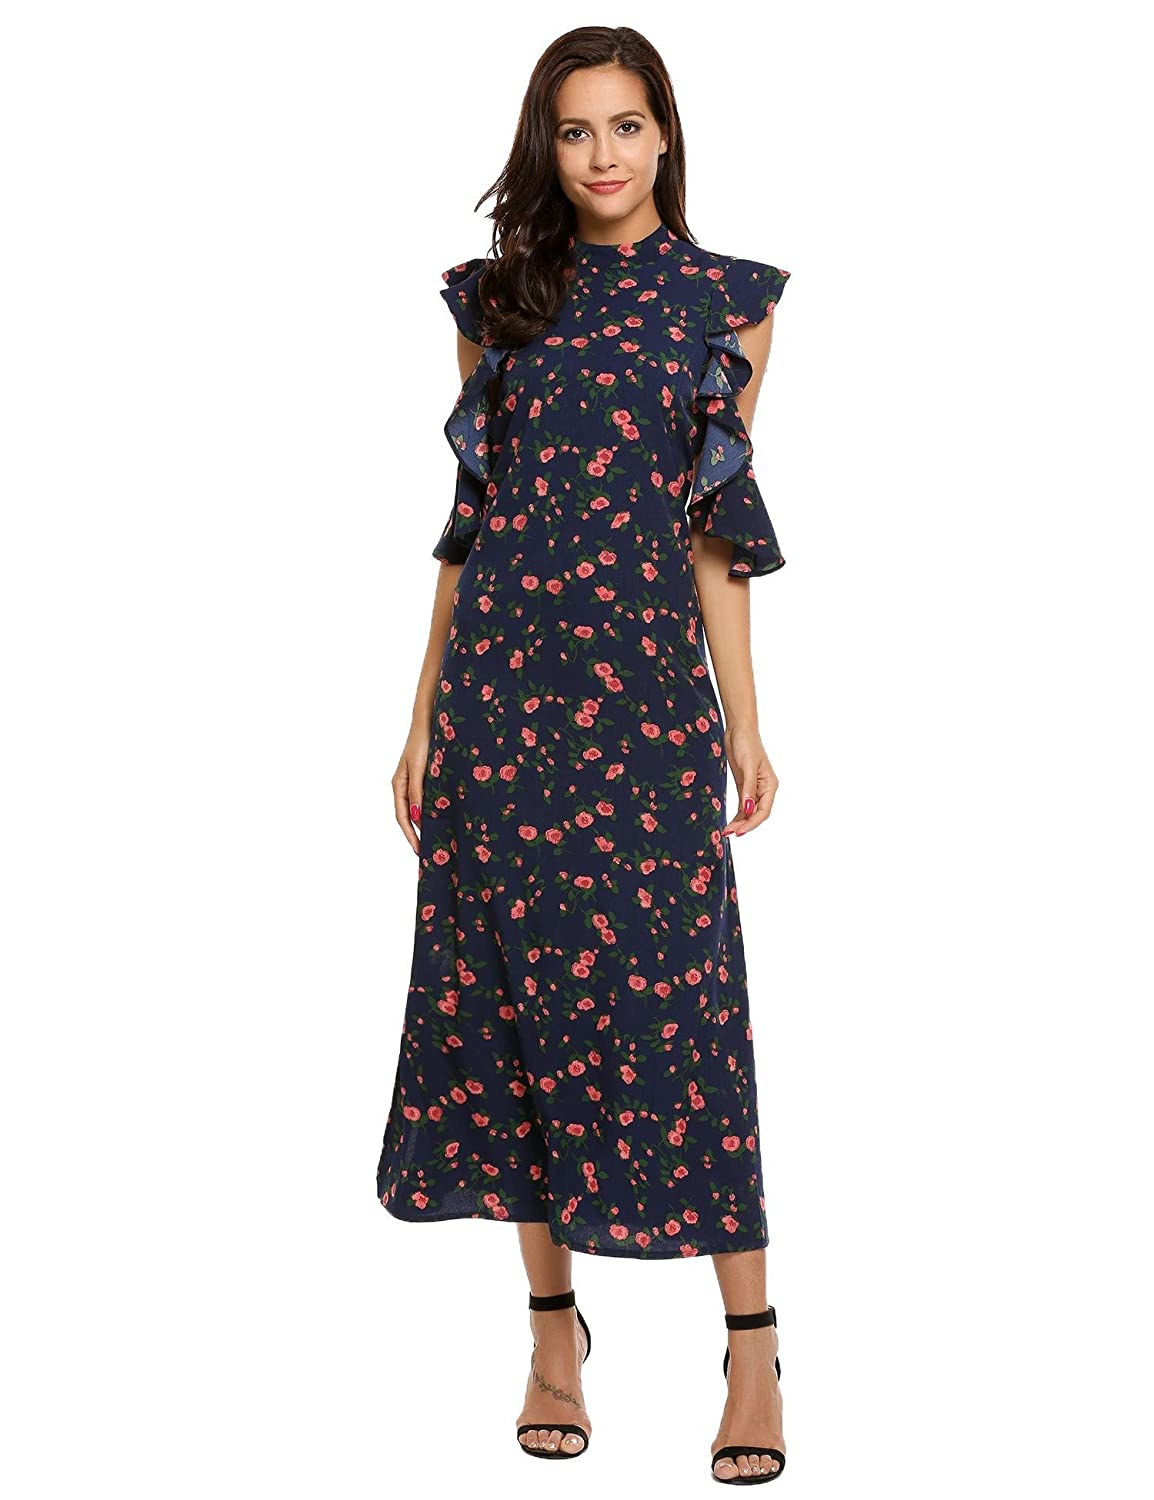 ACEVOG Women's Vintage Summer Casual Cold Shoulder Floral Print Long Cocktail Party Dress